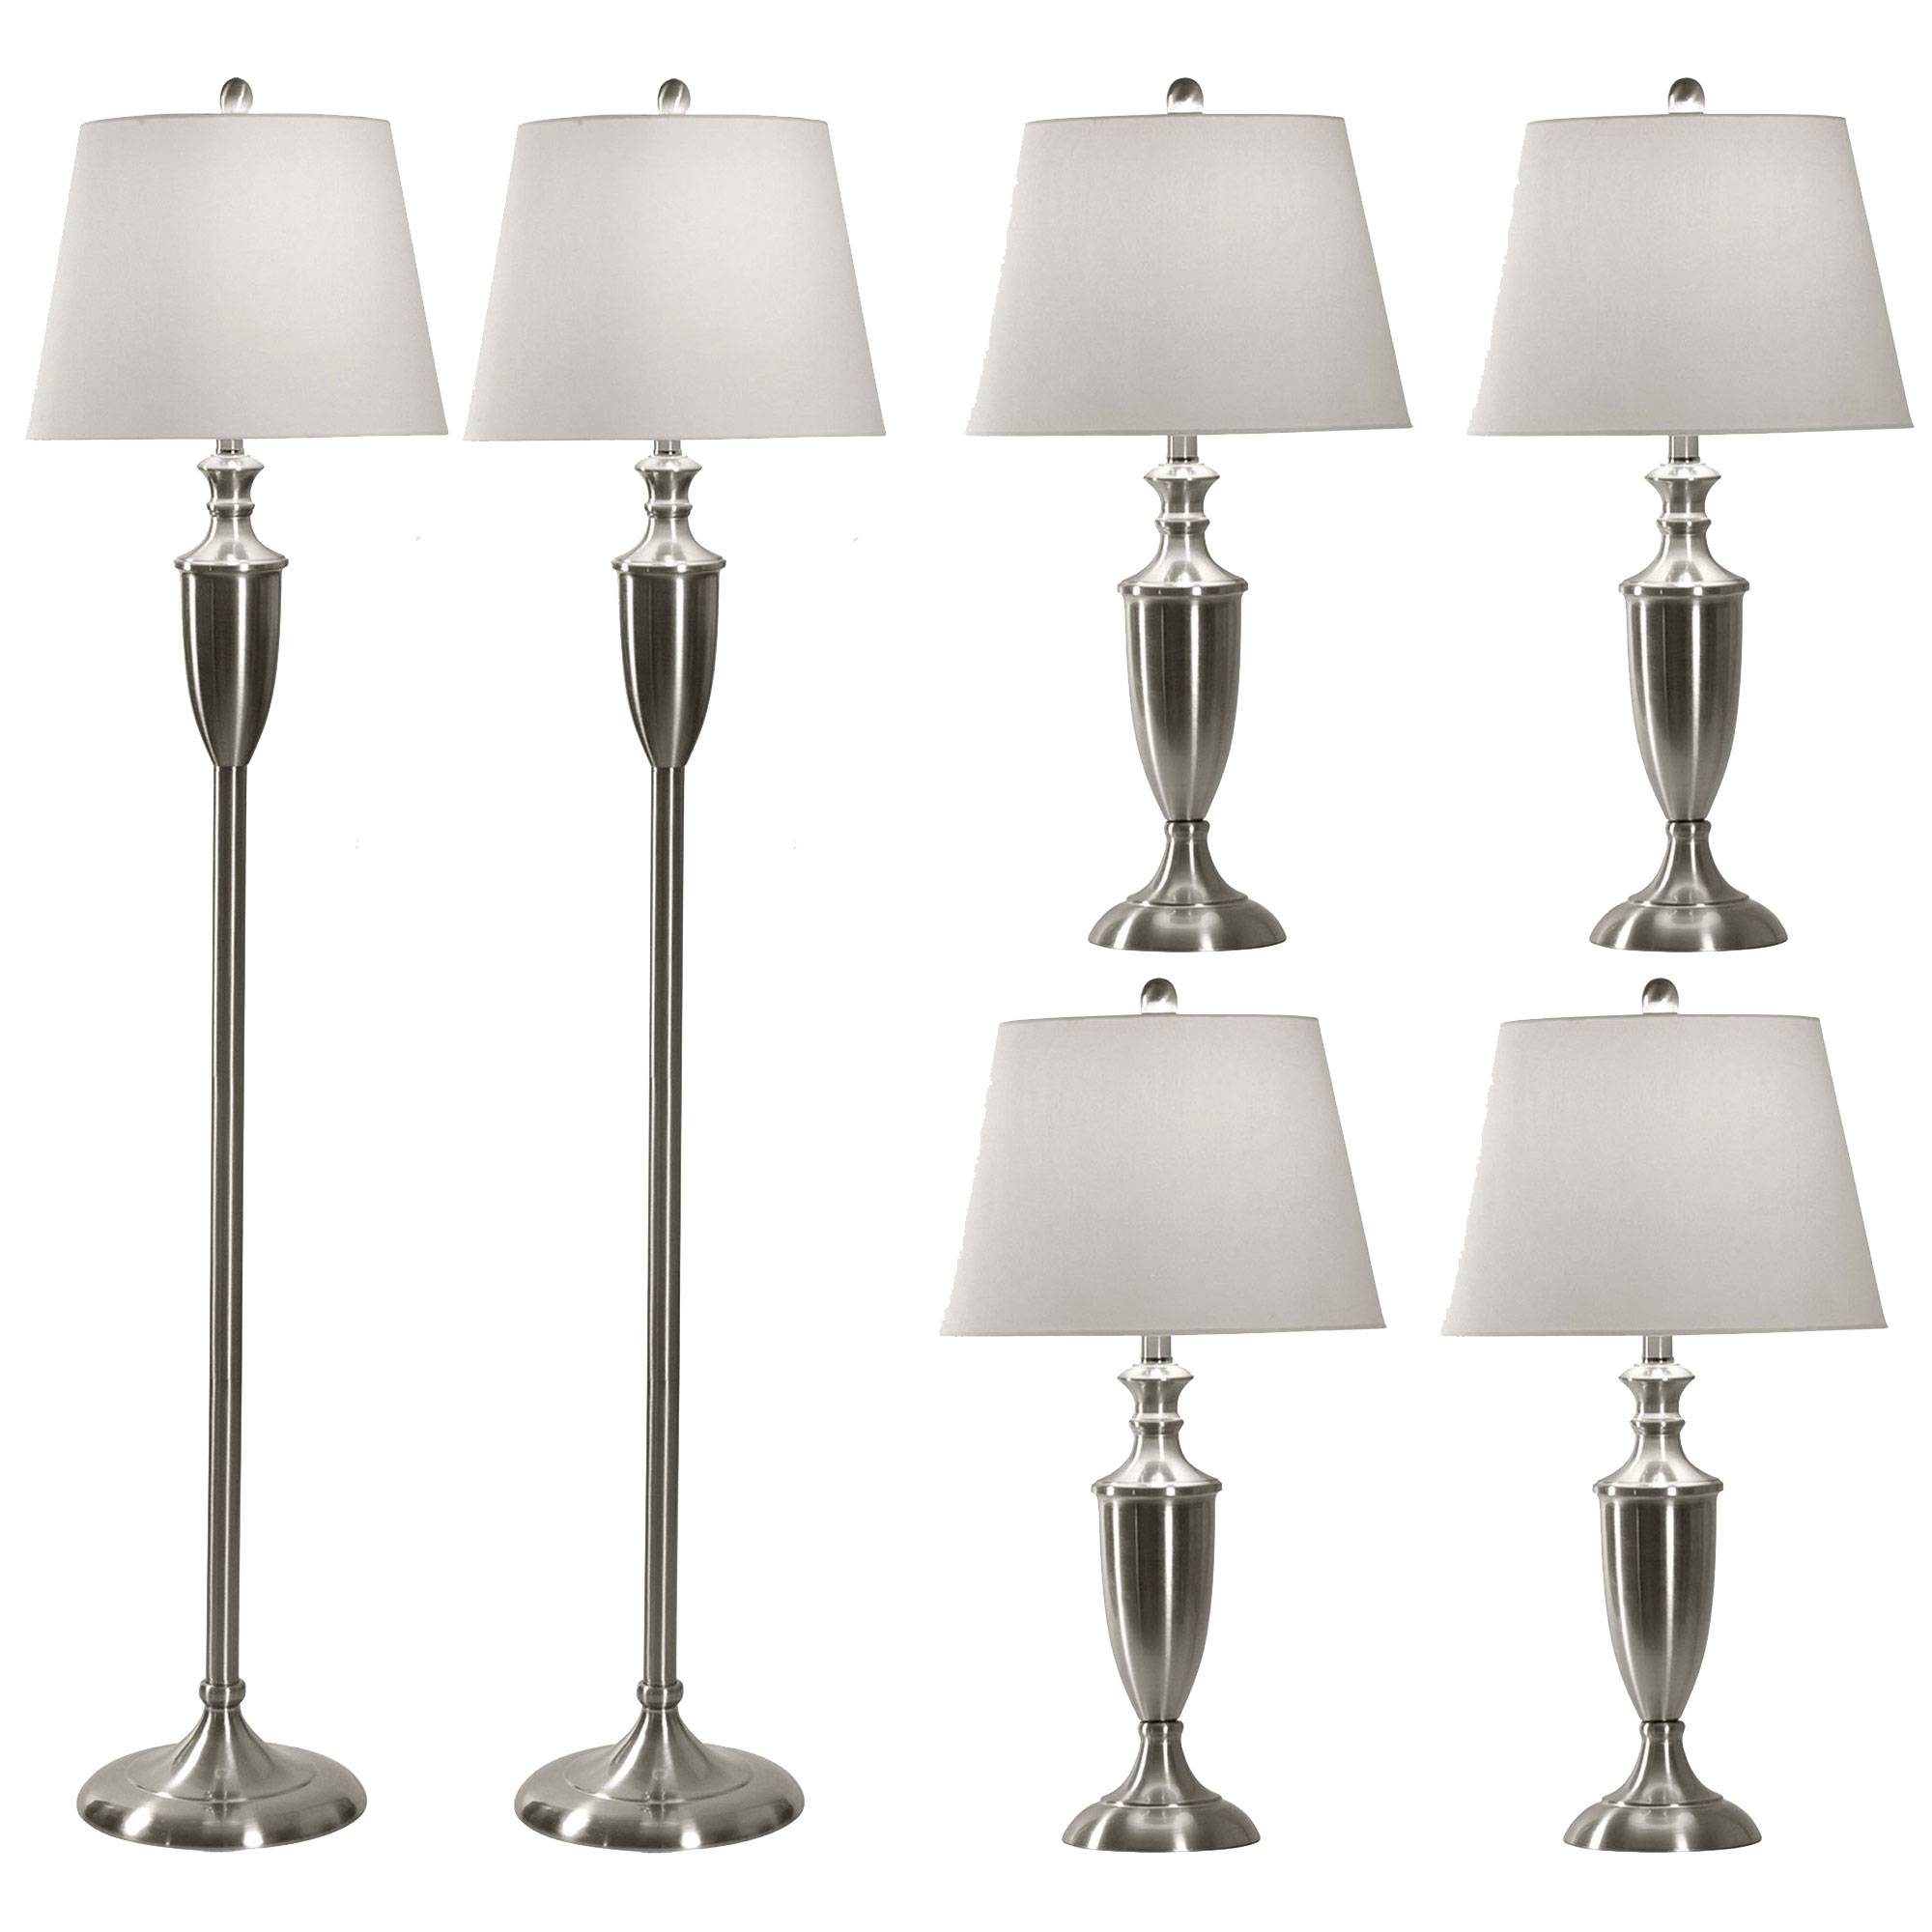 Abode 84 4 Brushed Steel Modern Table Lamps And 2 Floor Lamp Set